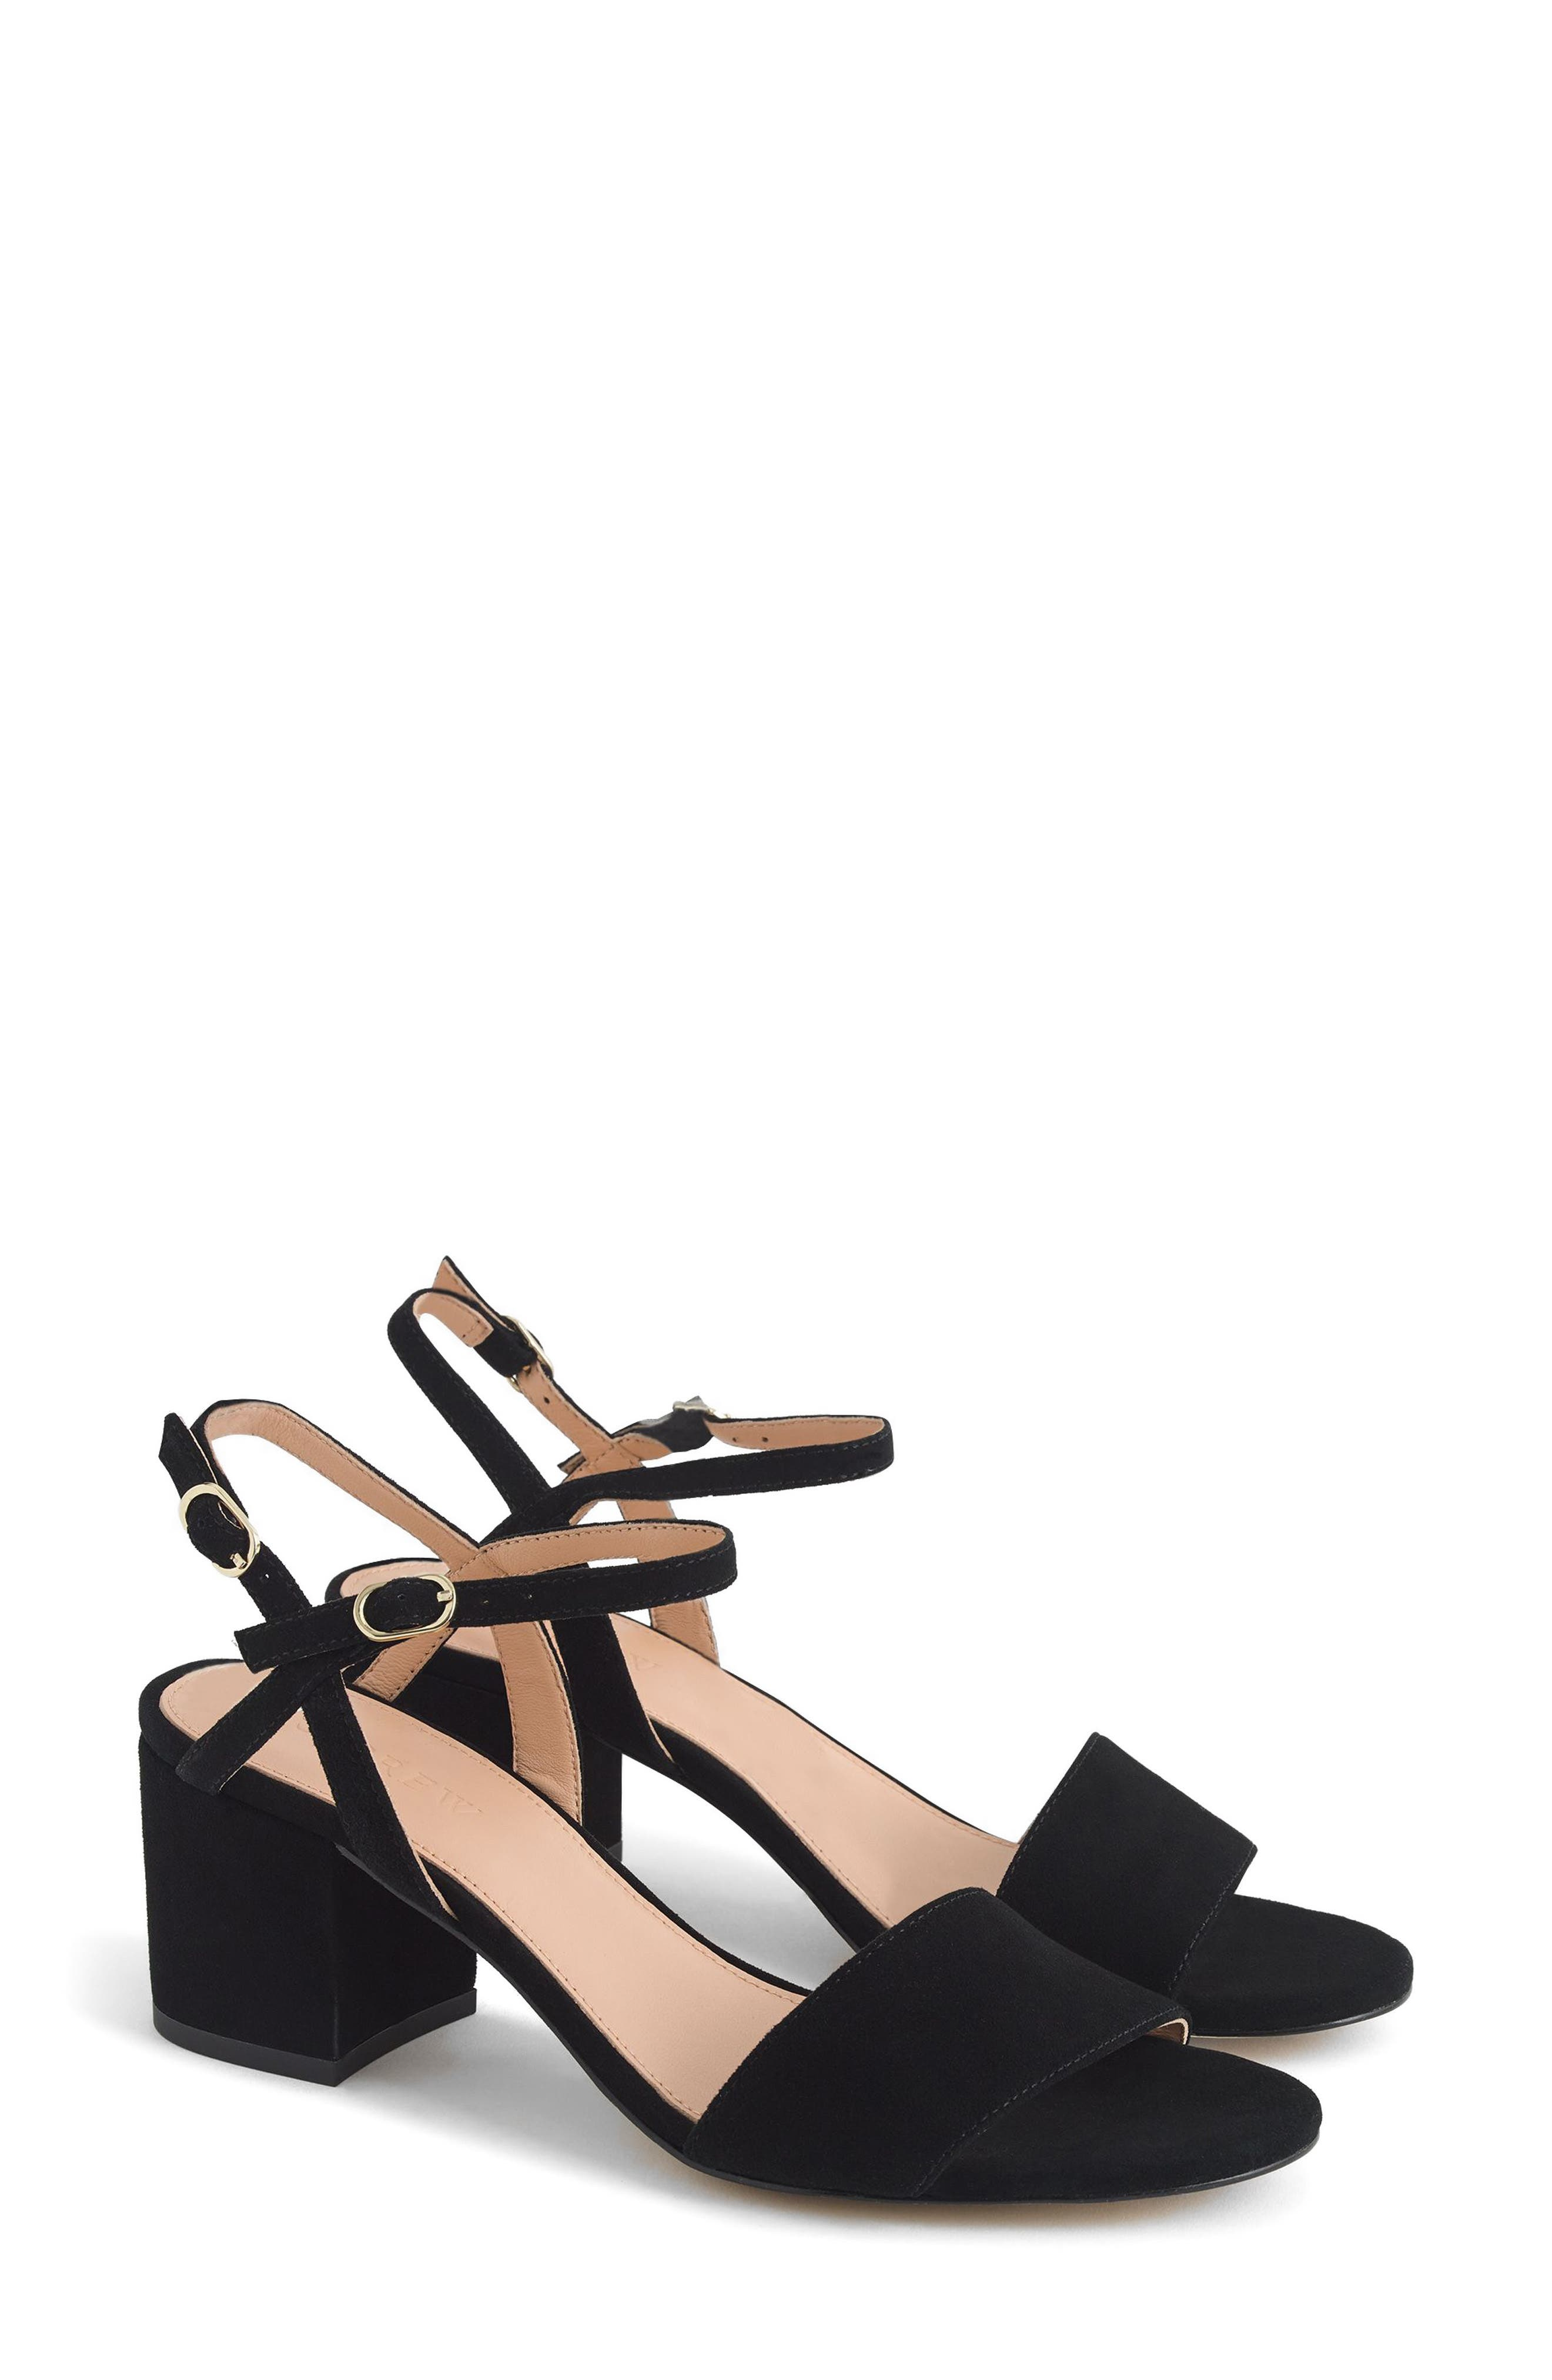 Strappy Block Heel Sandal,                         Main,                         color, Black Leather